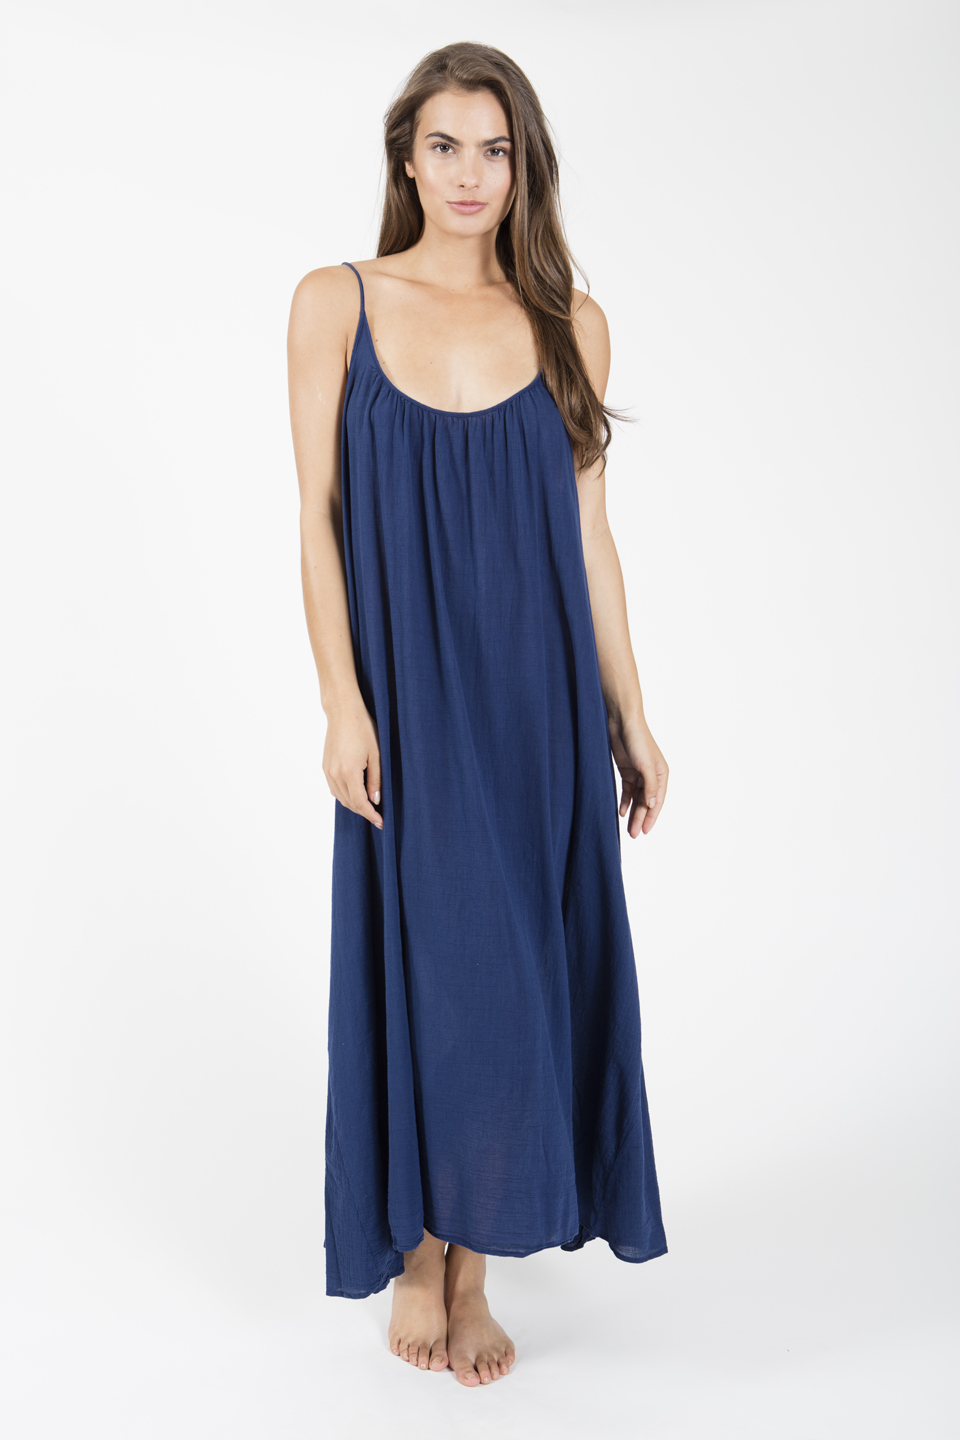 Tulum low back maxi - pacific